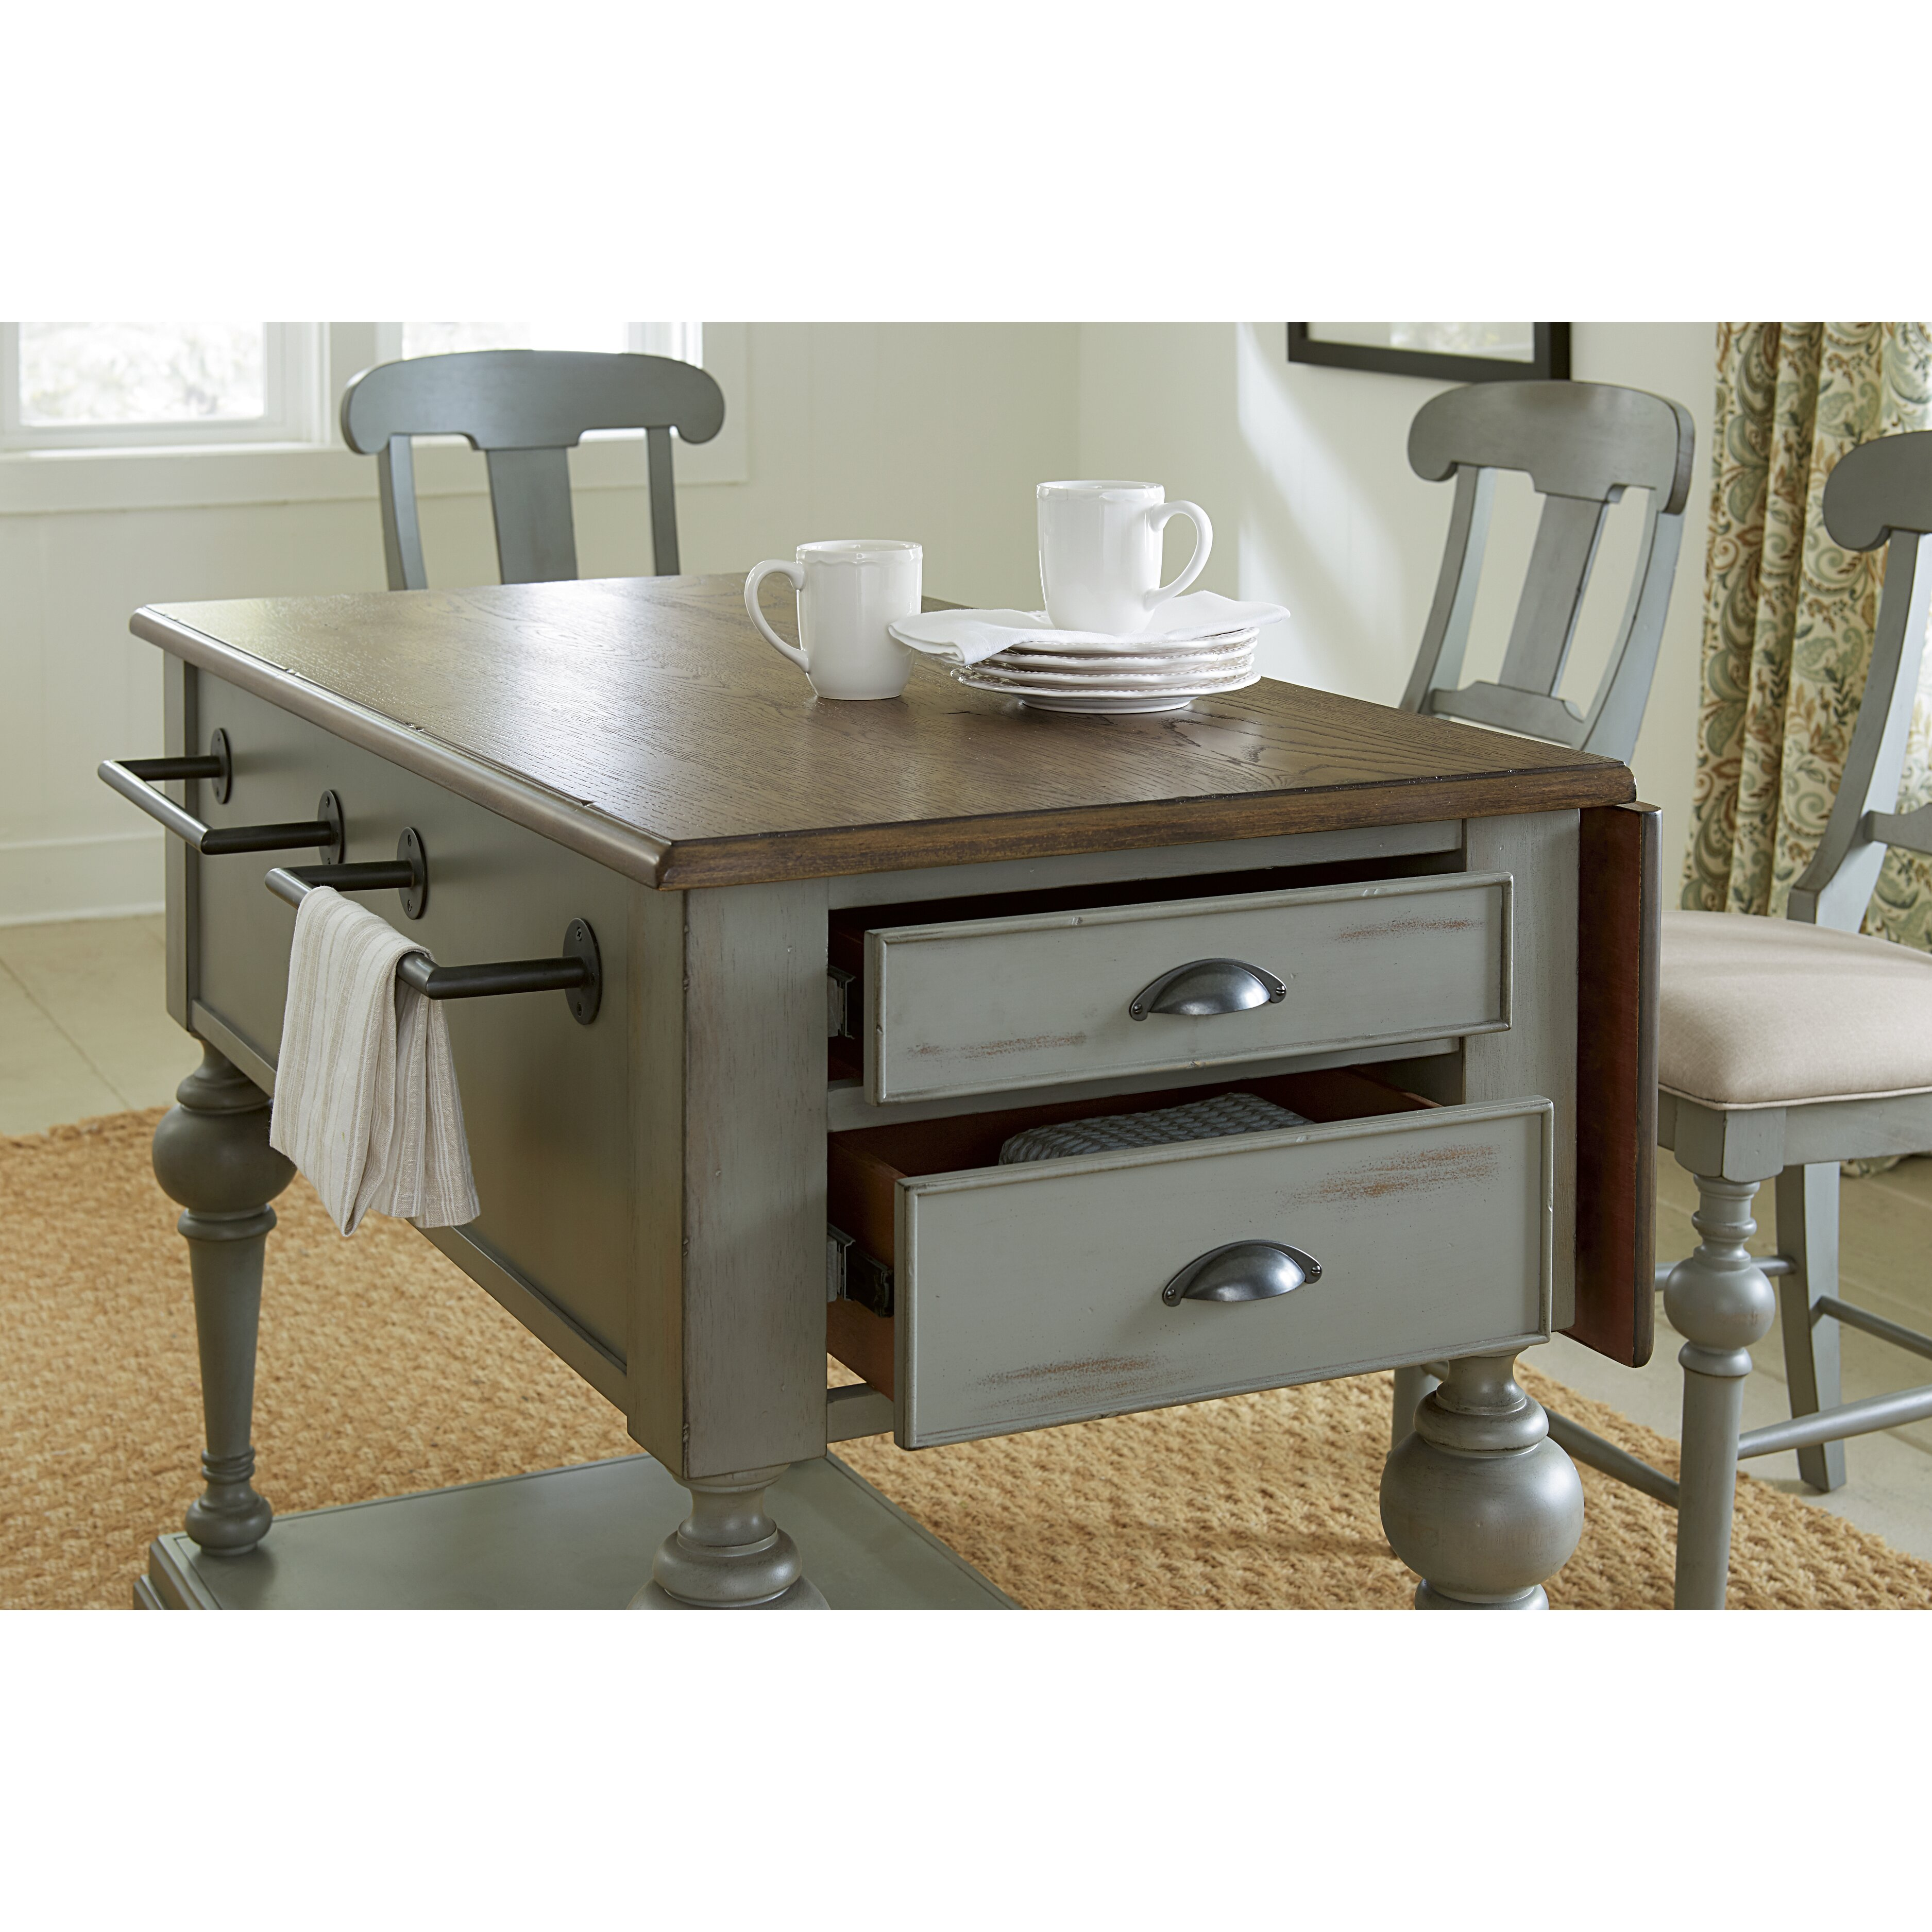 Kitchen Island August Grove Apollinaire Kitchen Island With Wood Top Reviews